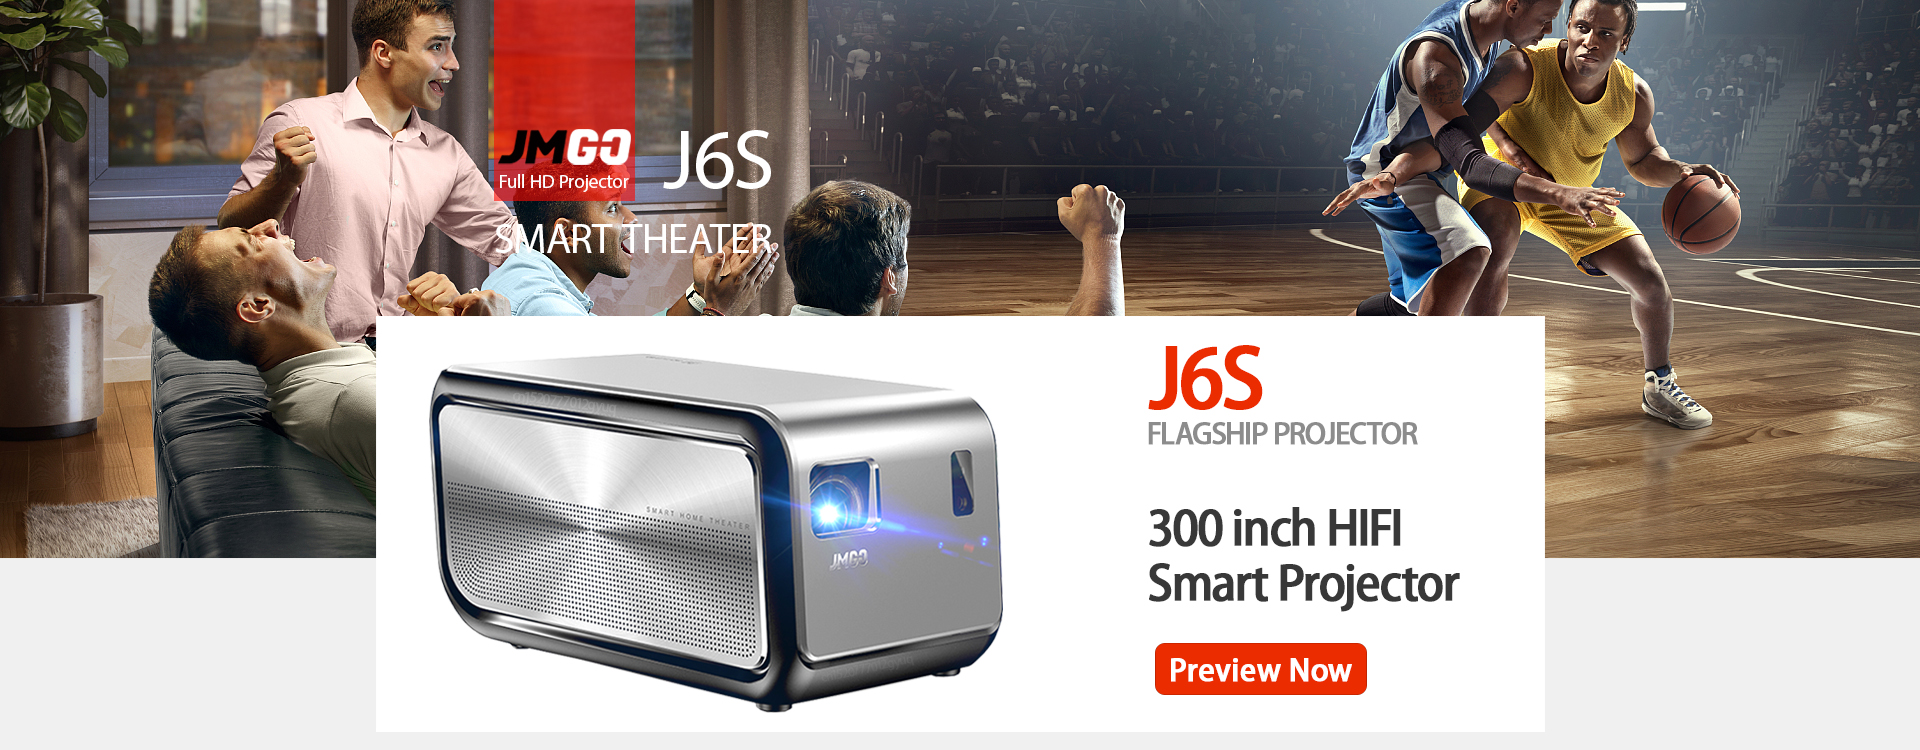 JMGO Offers 15%-25% Discount on Its Portable Android Projectors (24th April – 1st May)